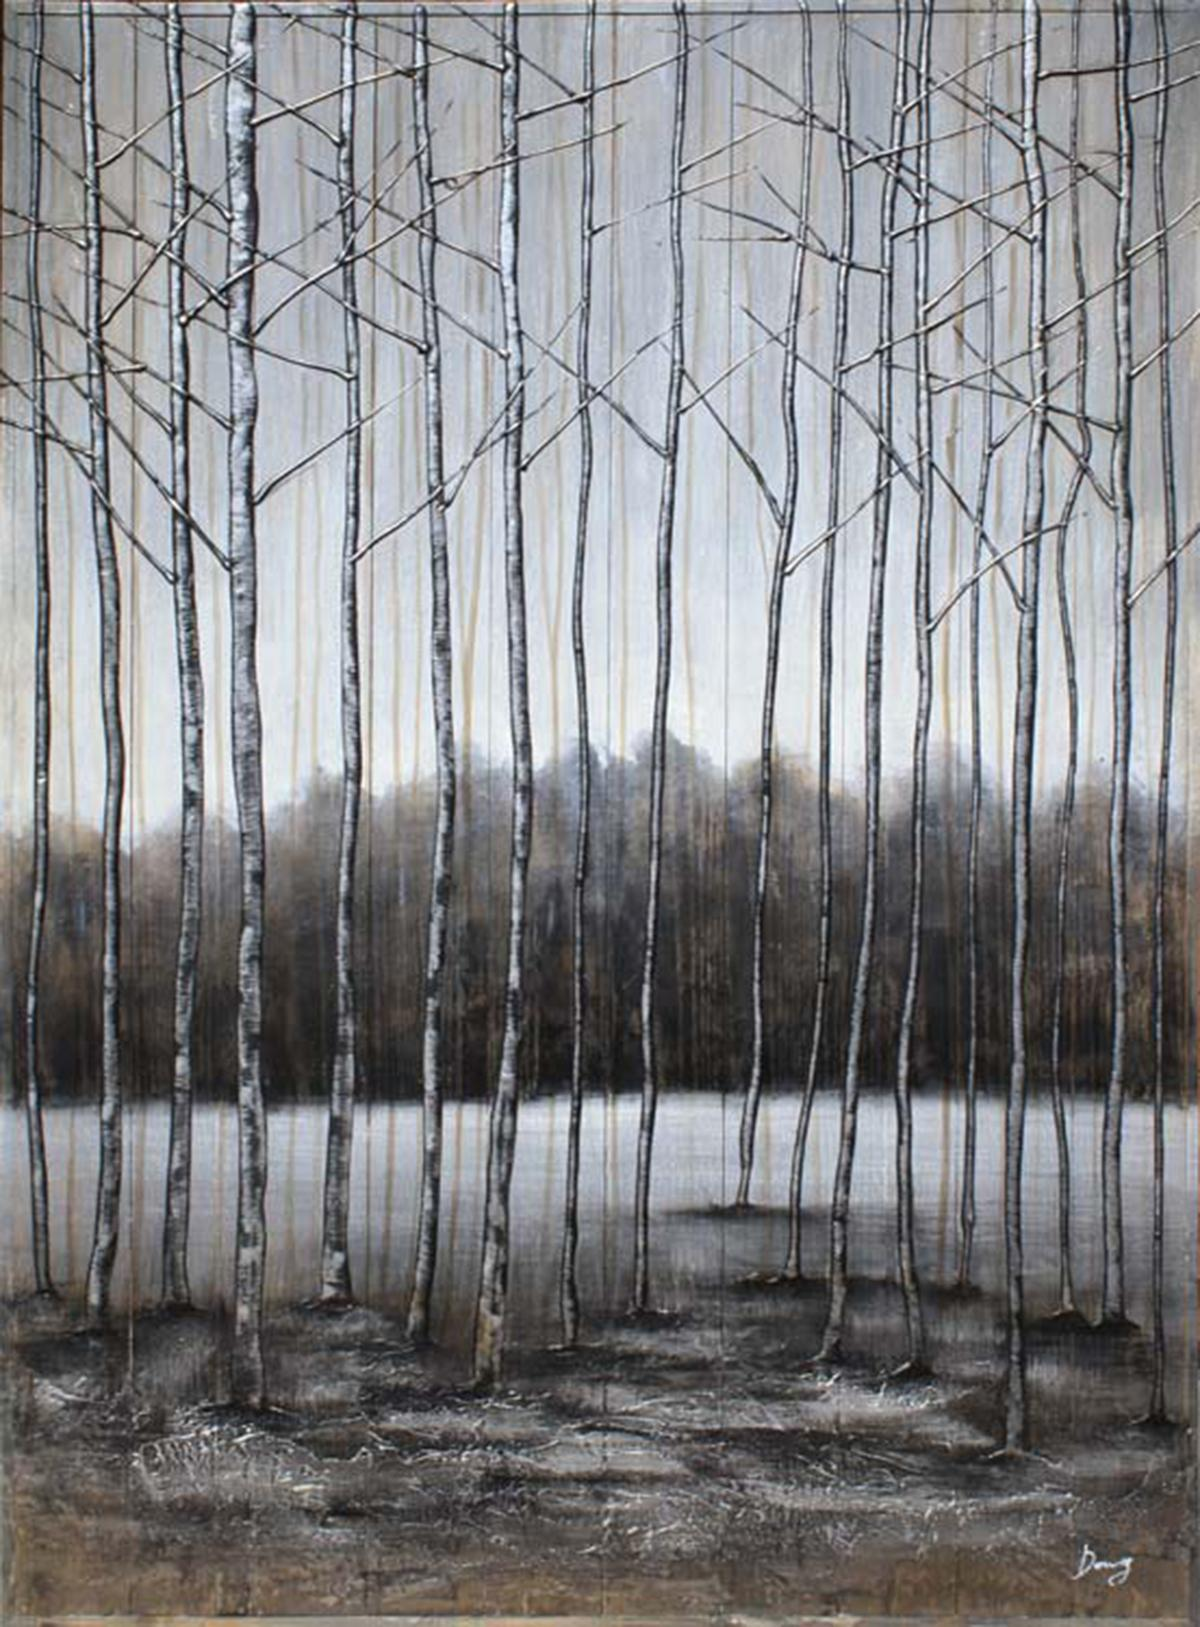 """Decor Art - """"The Icy Forest"""" on Barn Board"""